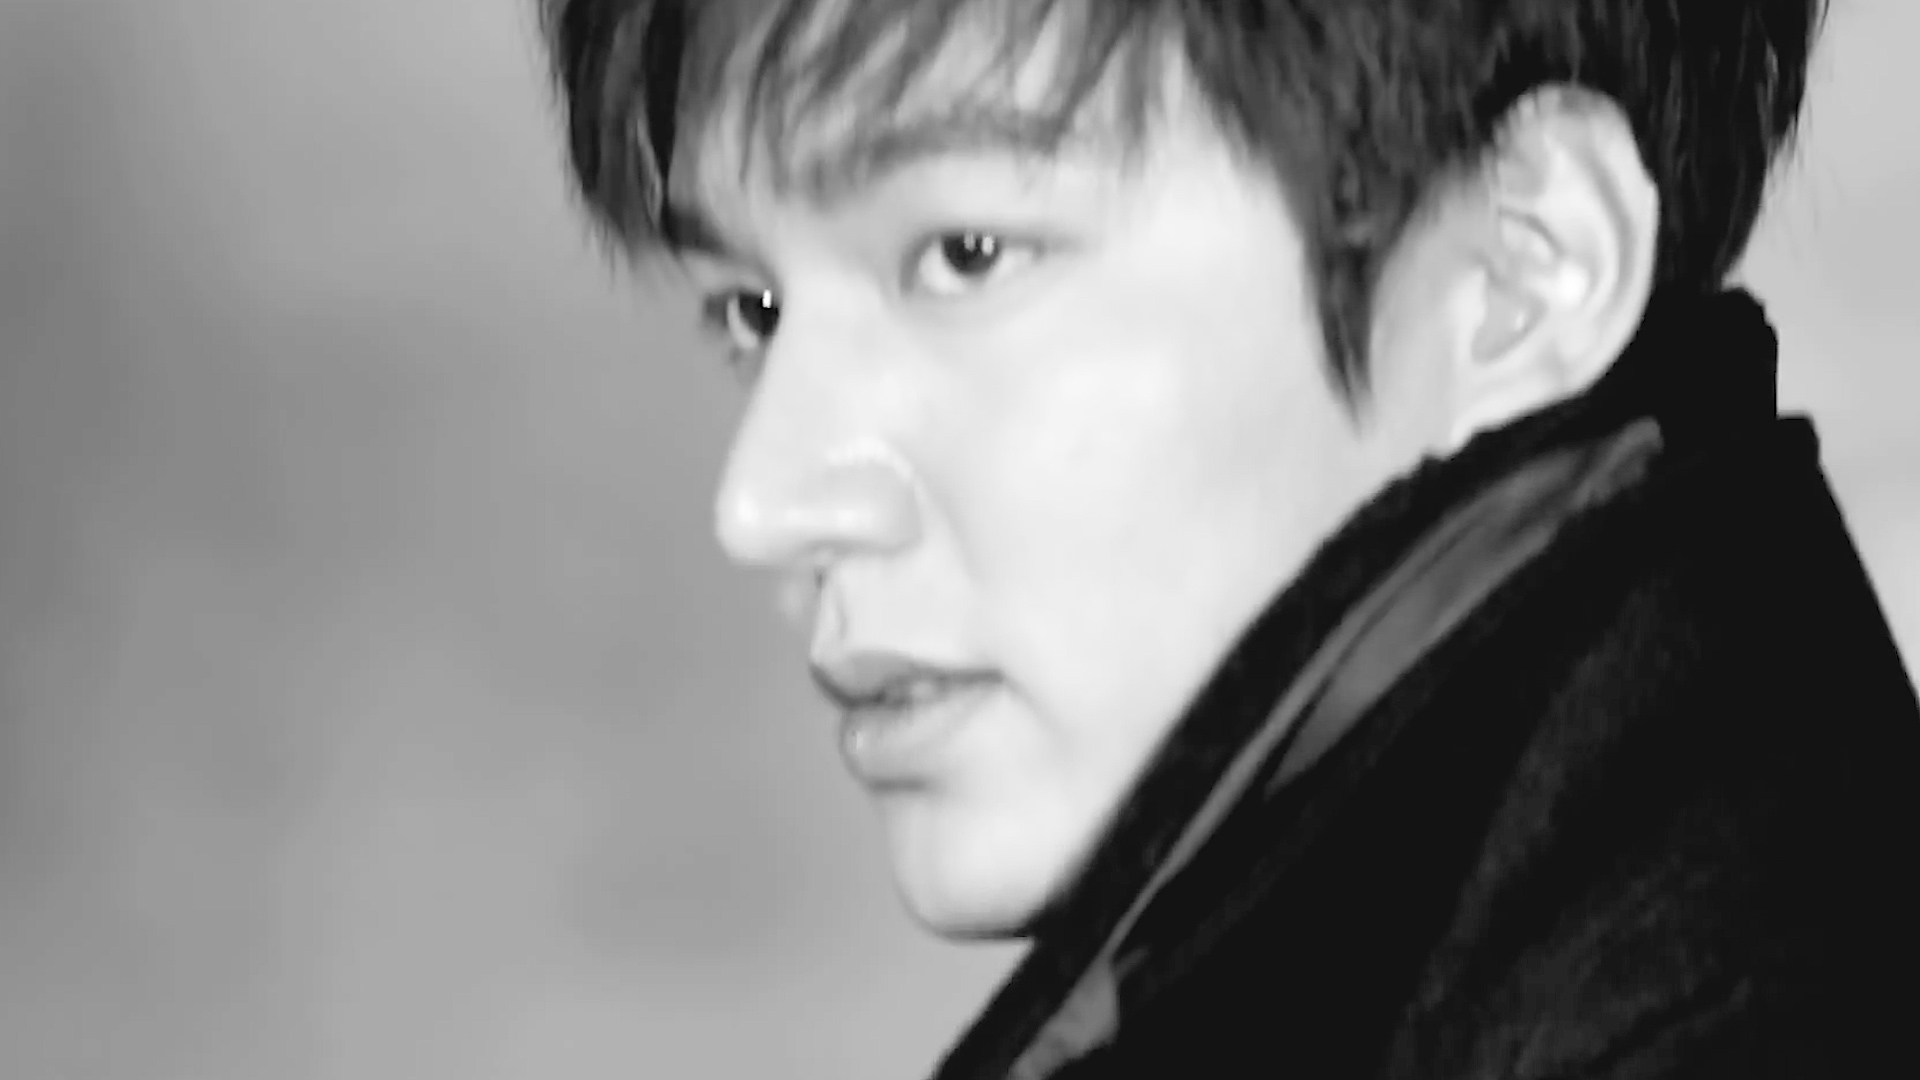 [HD] Lee Min Ho 2014 SOME JEANS, GUESS FW Collection Making FilmStill015